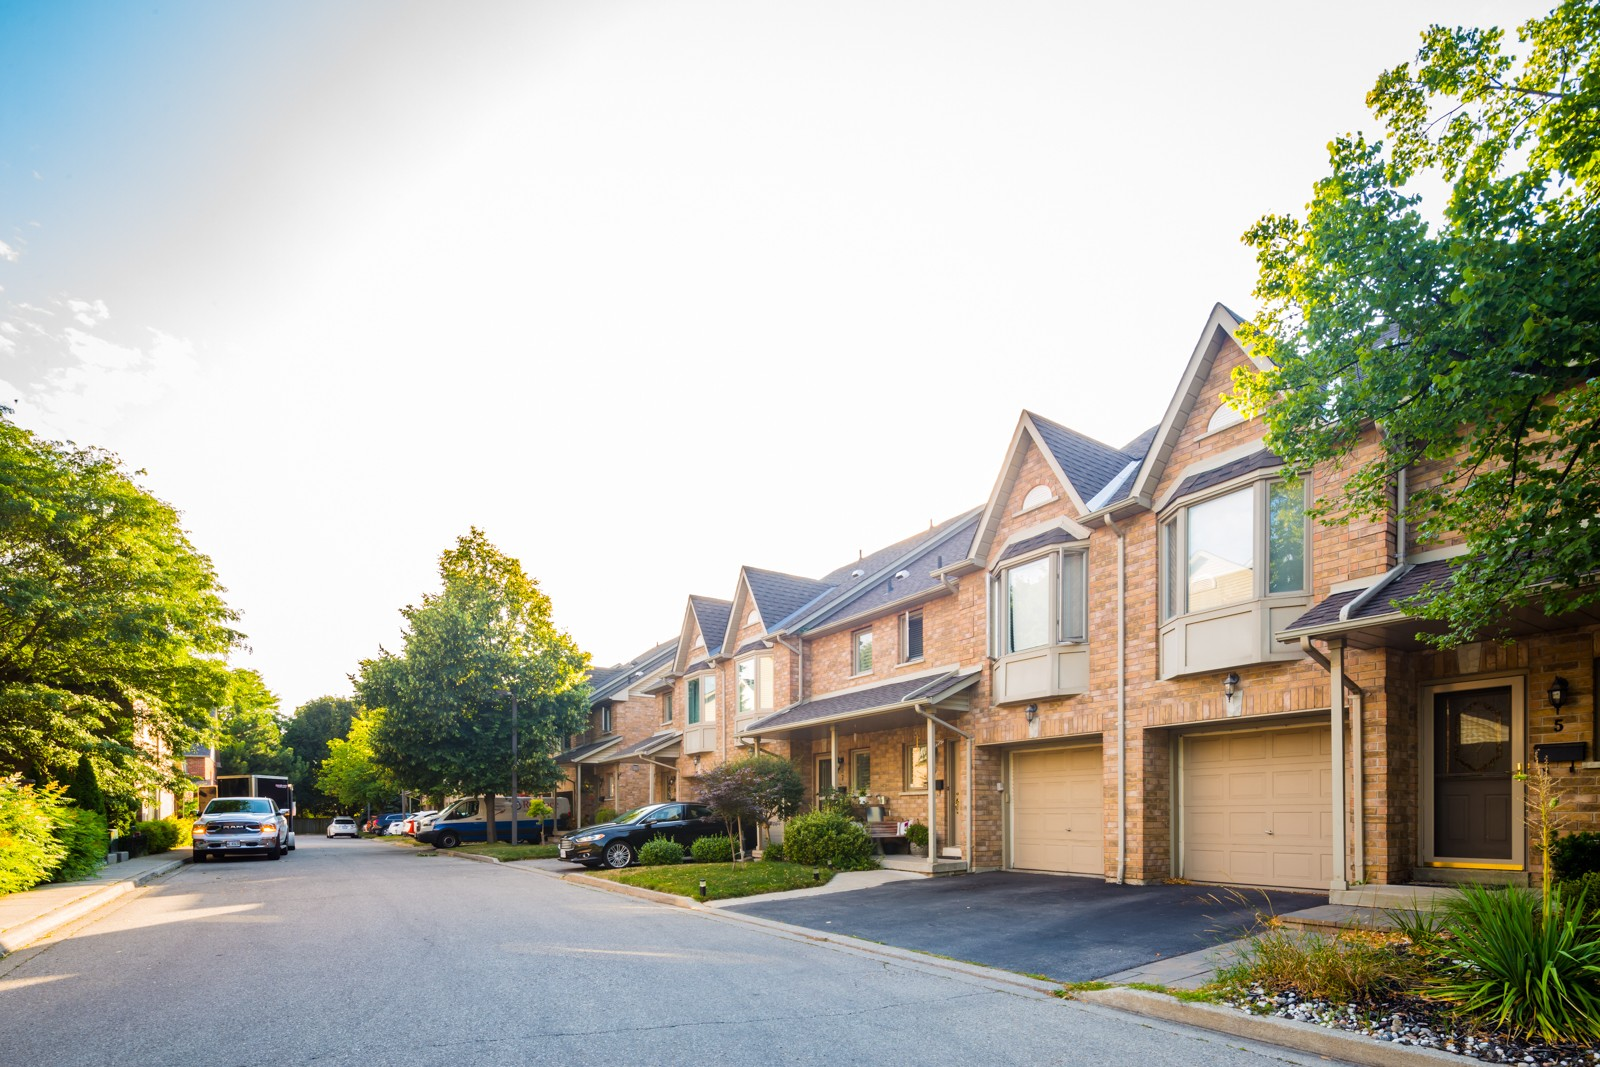 1385 Lakeshore Road West Townhouses at 1385 Lakeshore Rd W, Mississauga 1